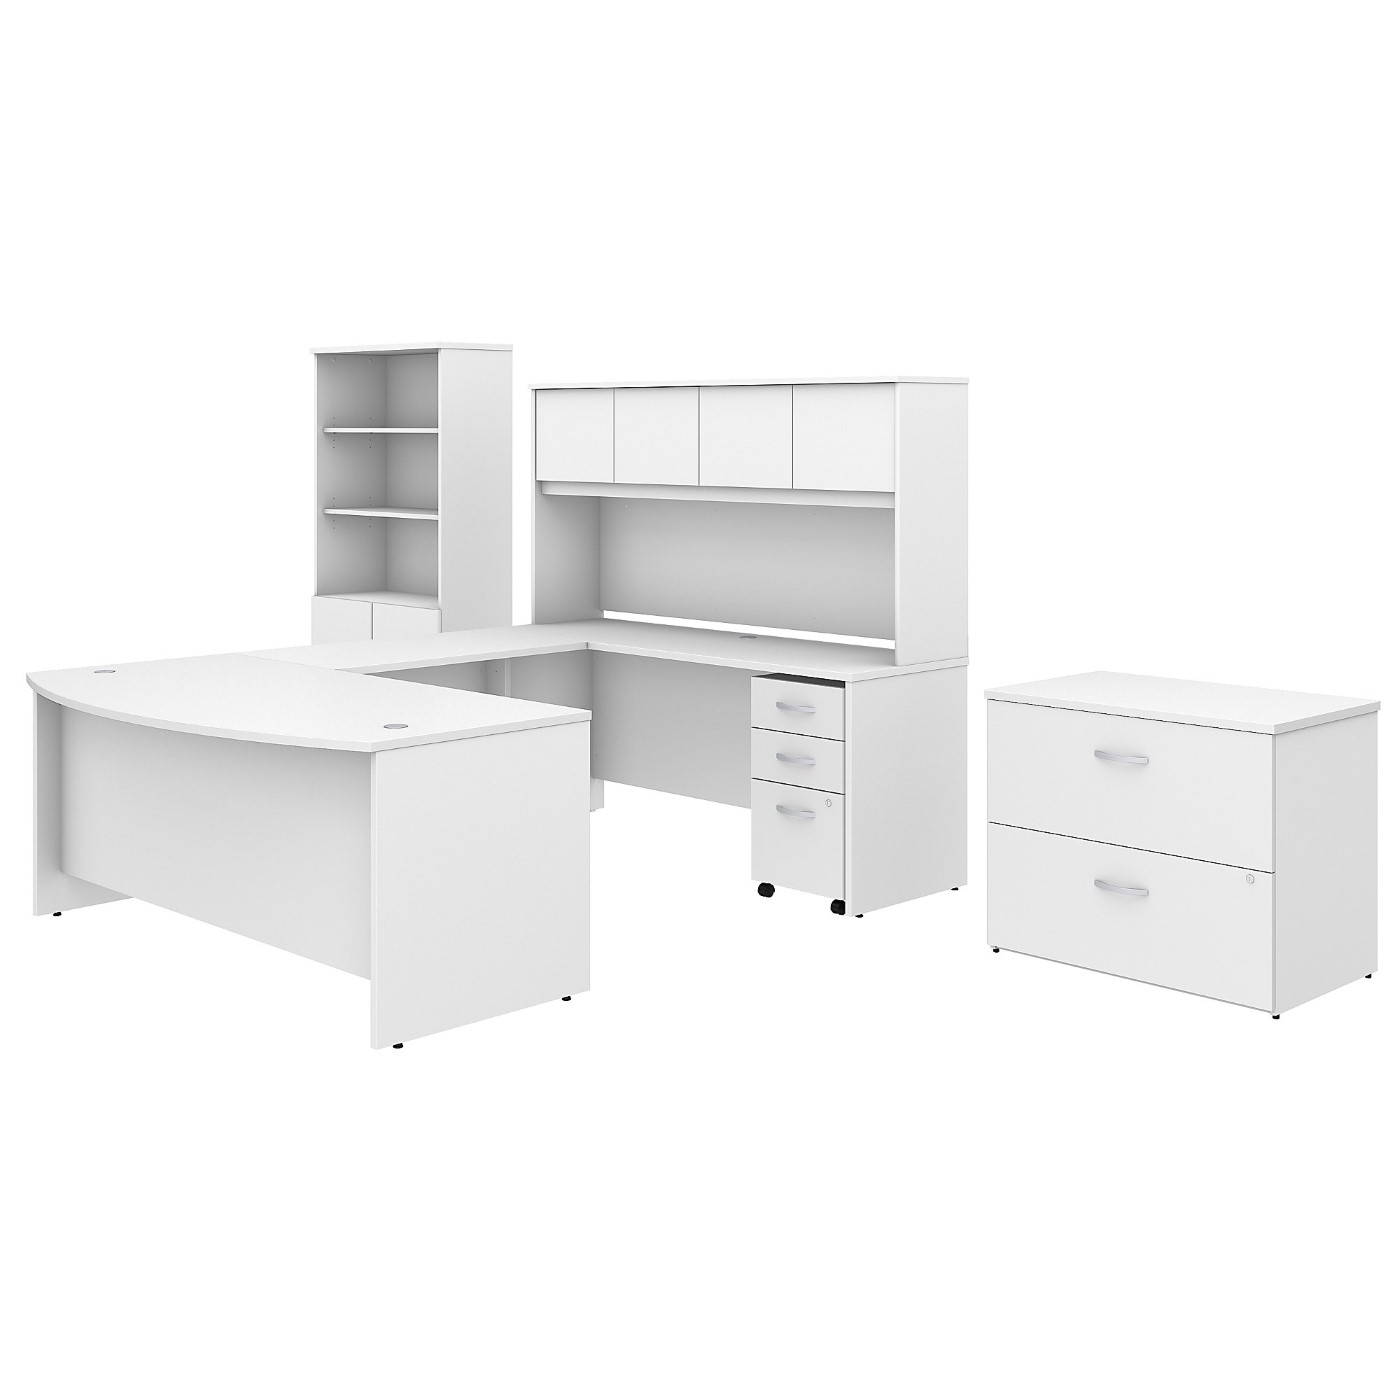 BUSH BUSINESS FURNITURE STUDIO C 72W X 36D U SHAPED DESK WITH HUTCH, BOOKCASE AND FILE CABINETS. FREE SHIPPING